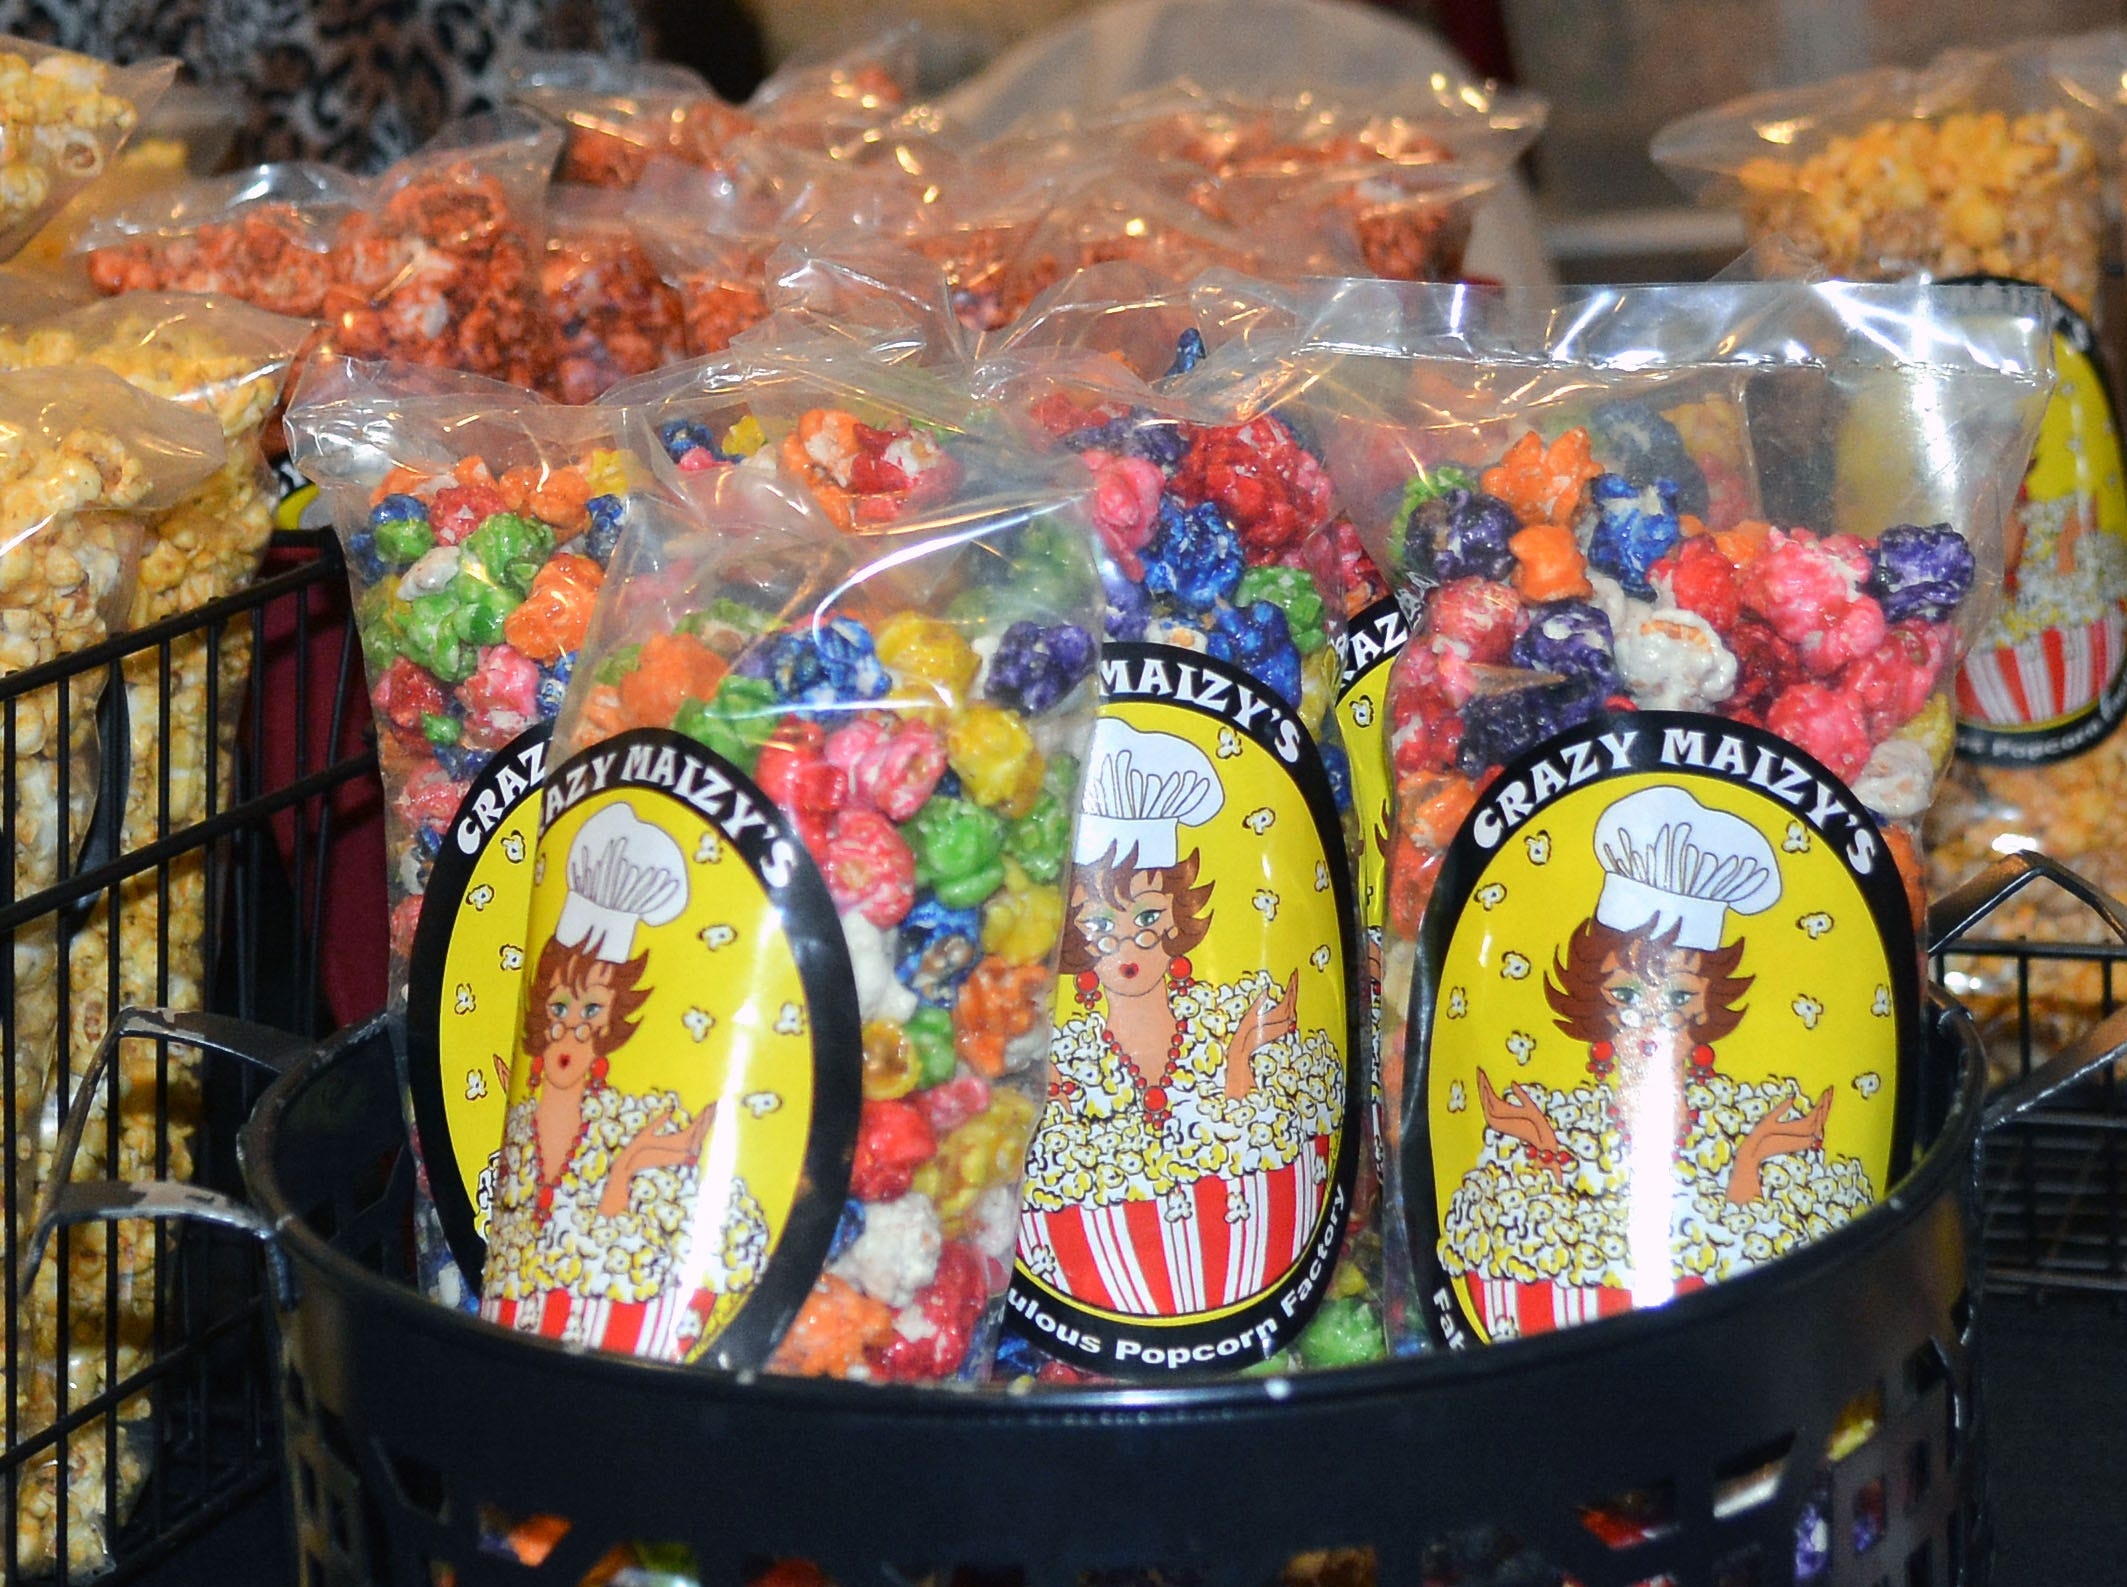 Crazy Maizy's Delicious Popcorn Factory was selling a large variety of flavored popcorns.  Photo taken 11/17/18.